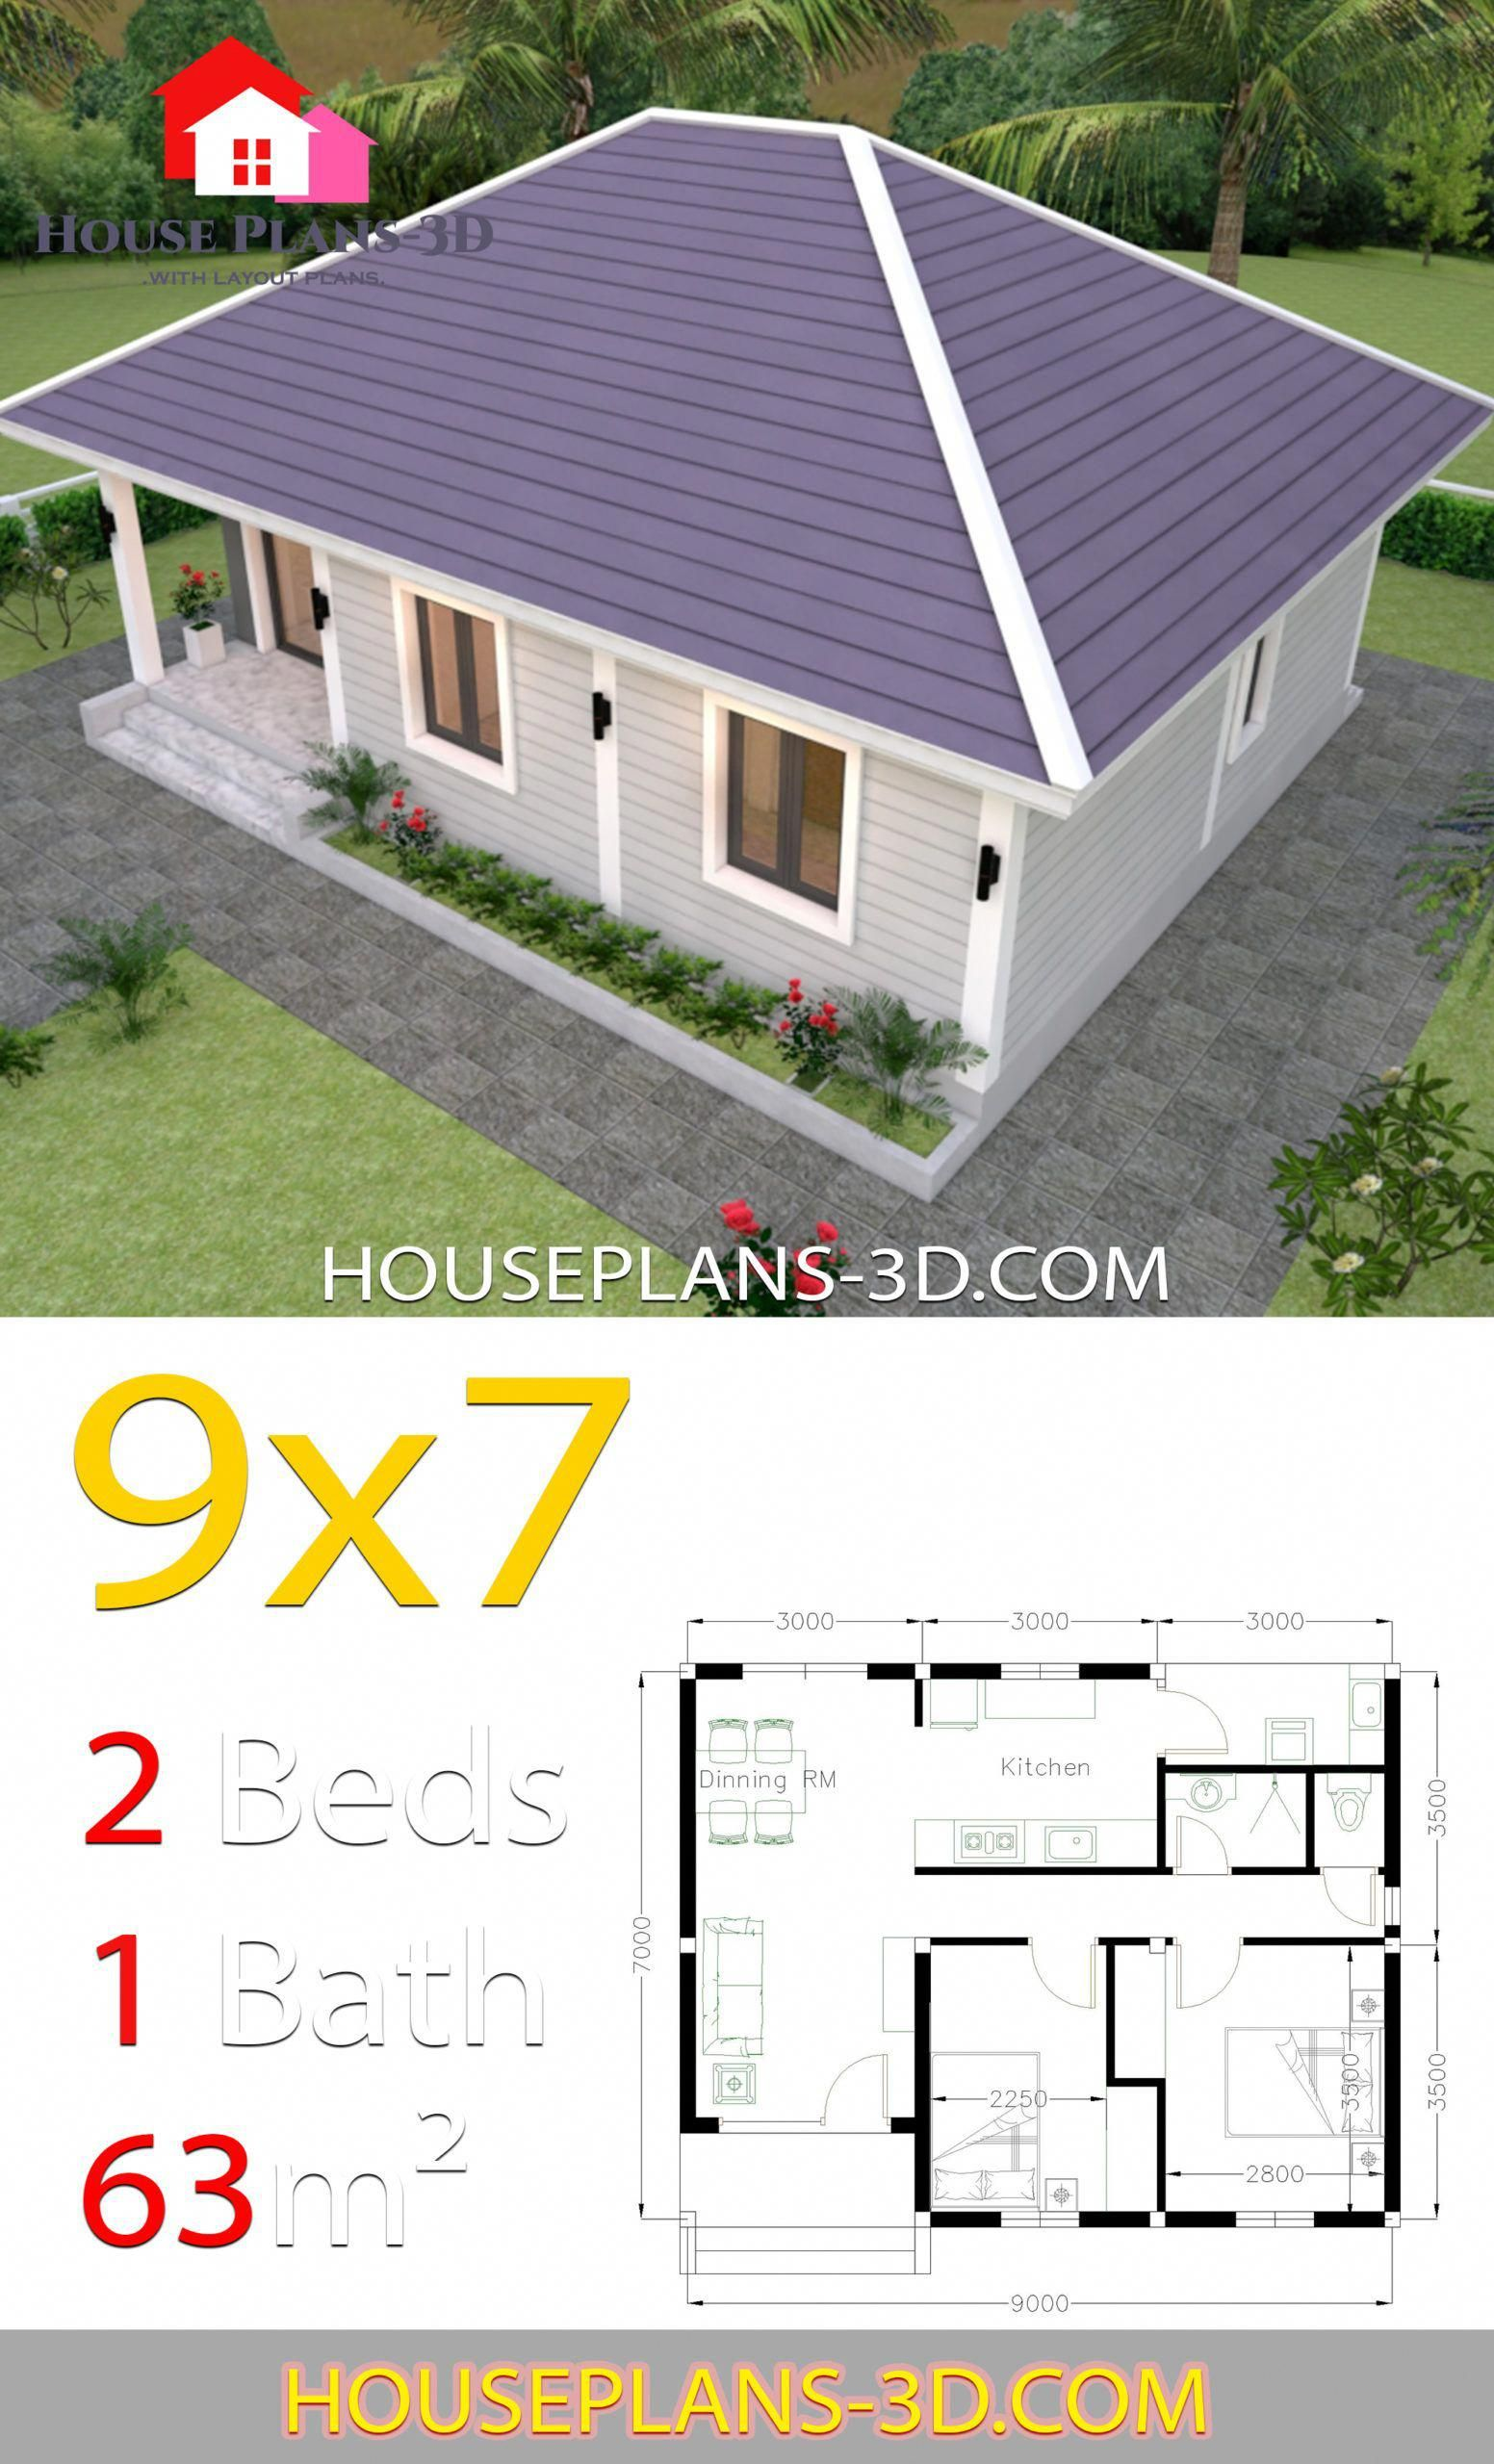 House Plans 9x7 With 2 Bedrooms Hip Roof House Plans 3d In 2020 House Plans Affordable House Plans House Roof